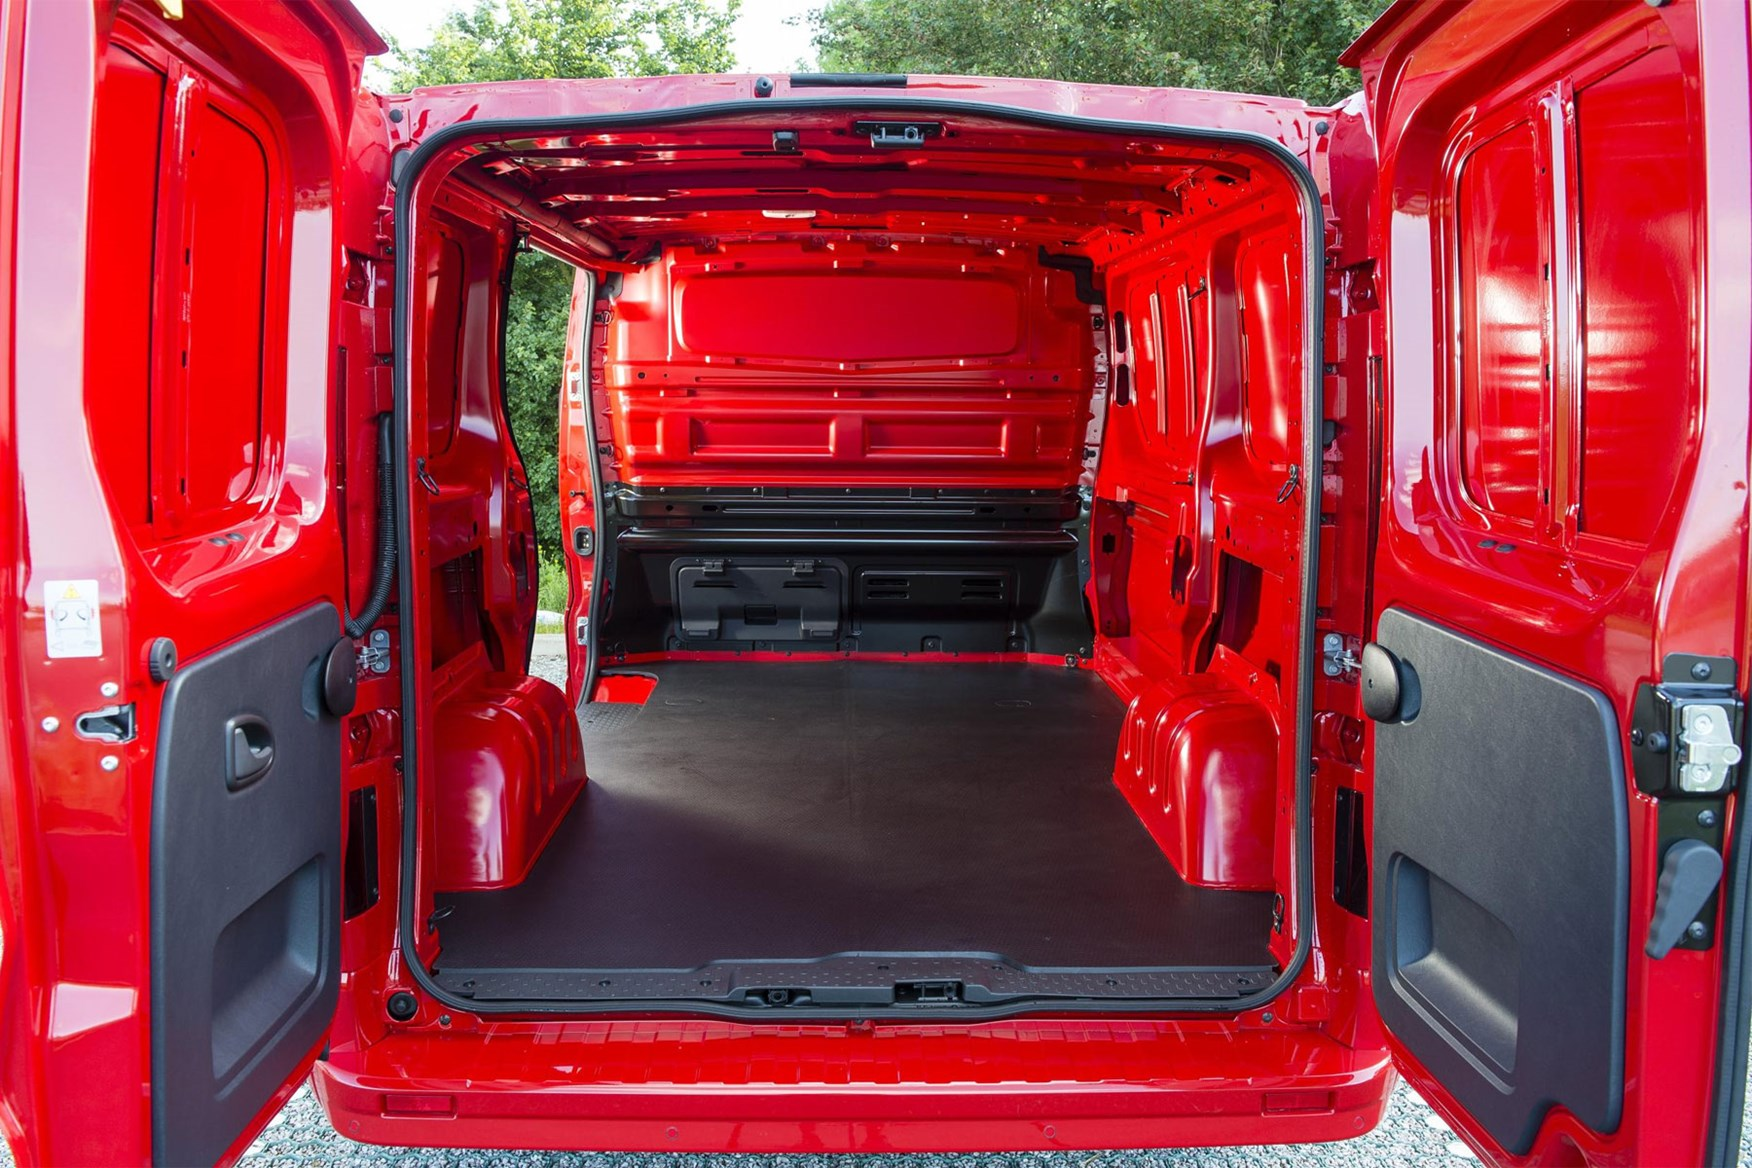 Vauxhall Vivaro Van Dimensions 2014 On Capacity